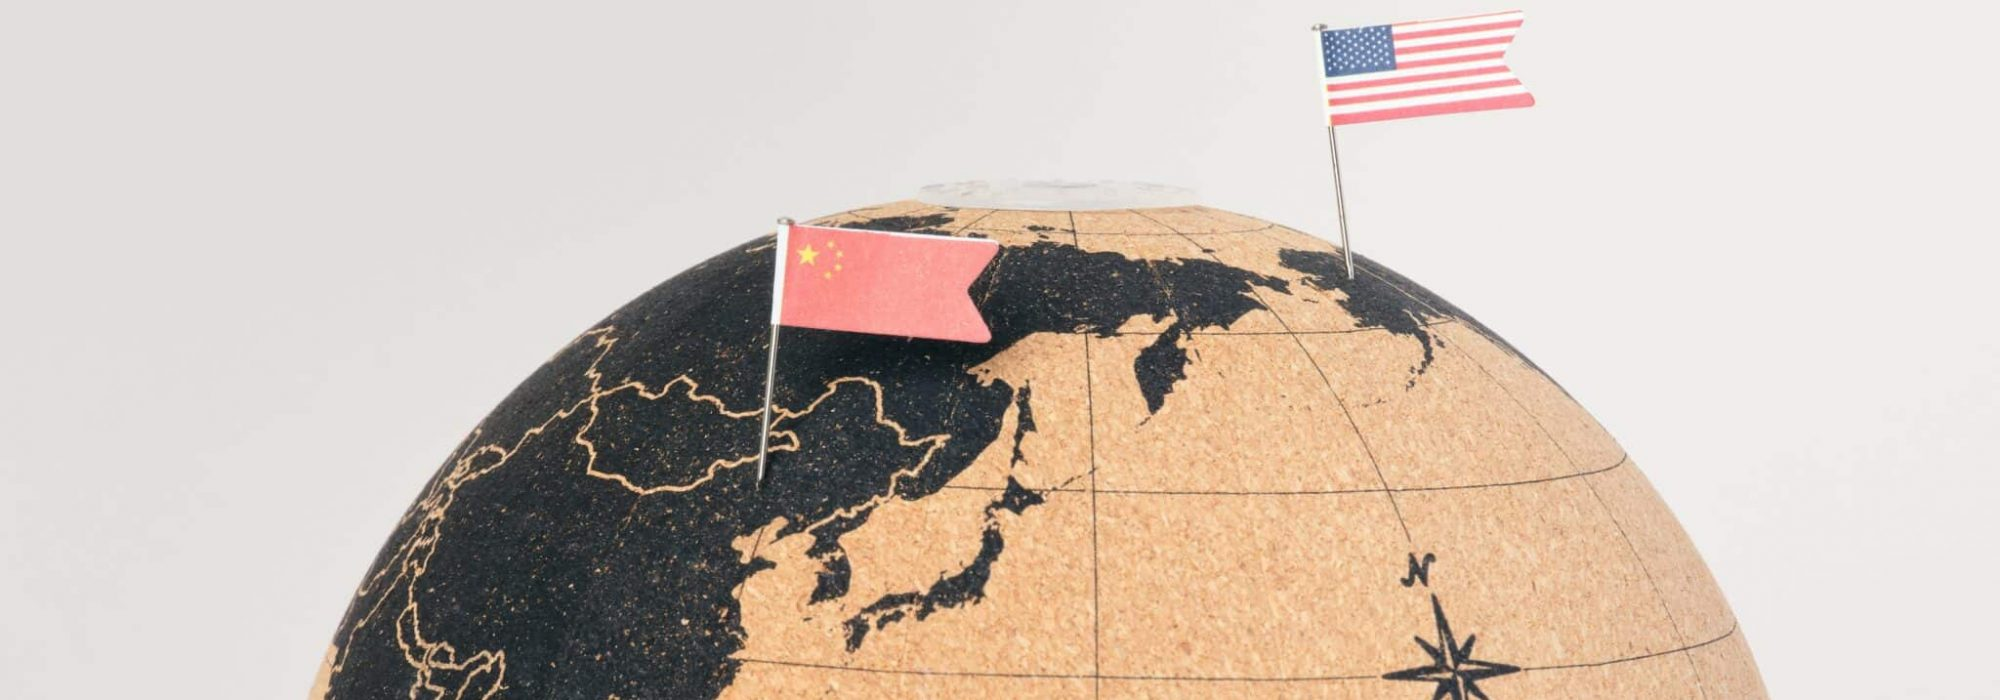 The US and China flags on a globe.